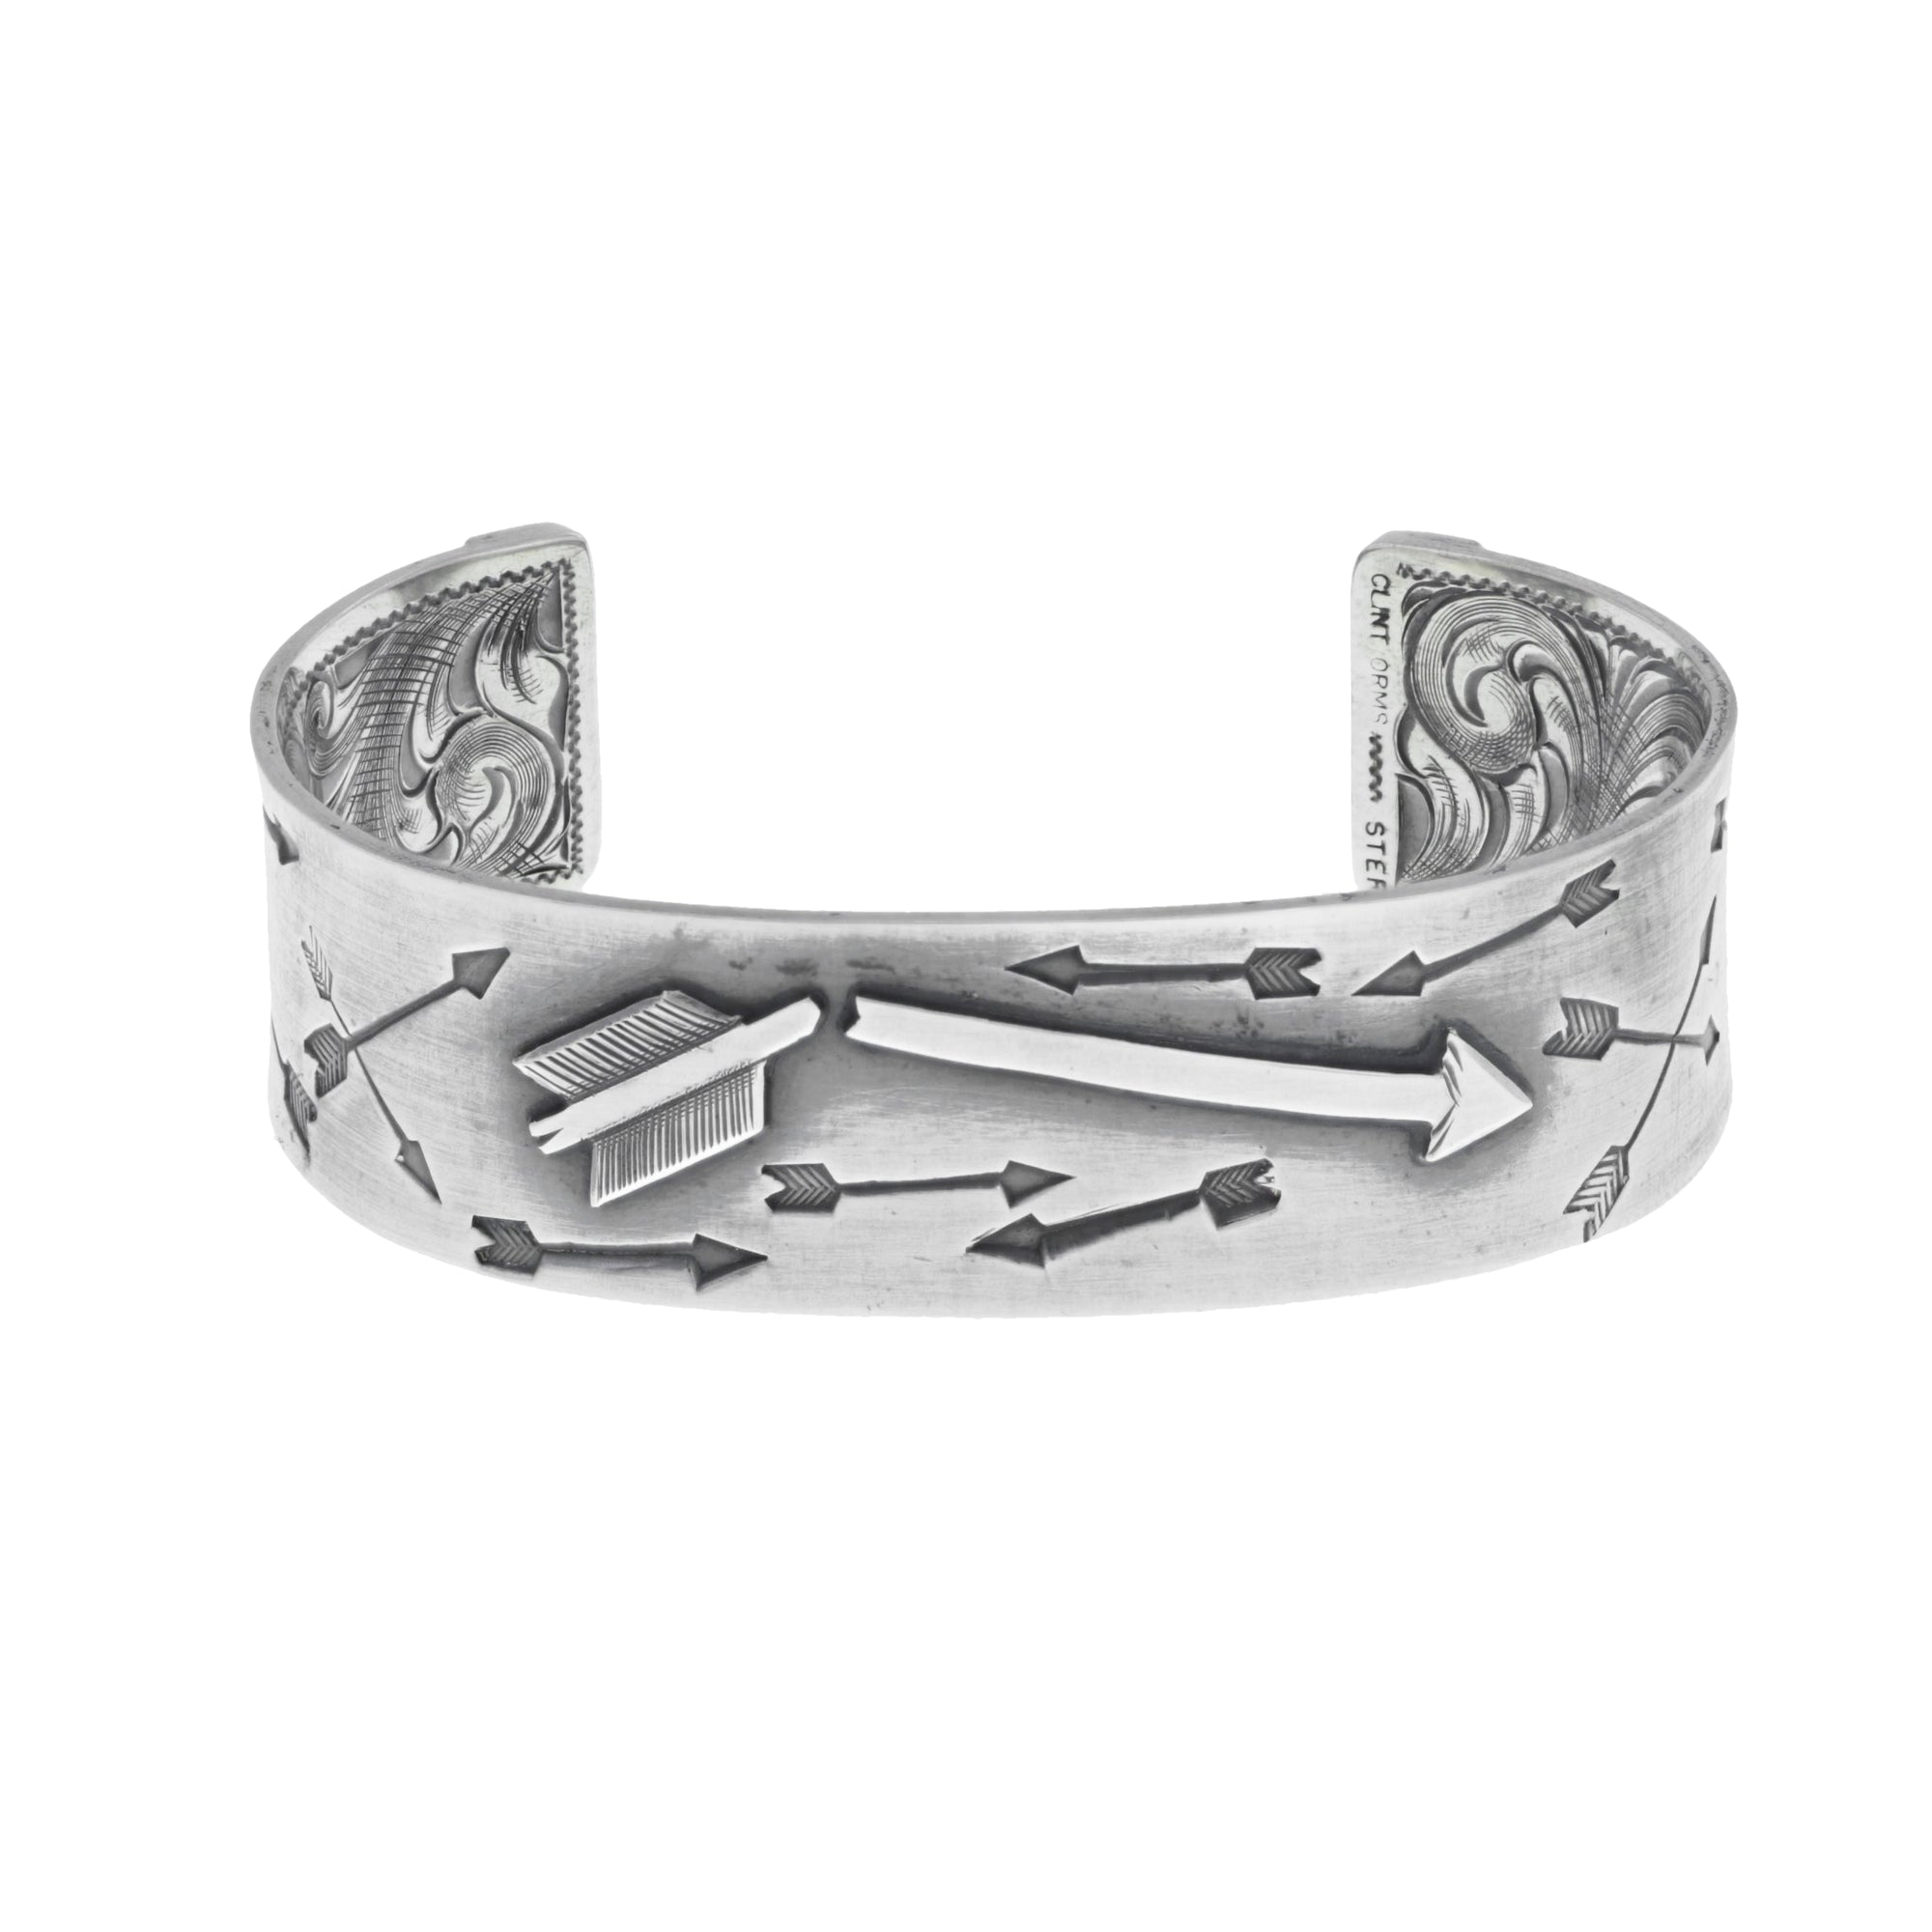 Bracelet 1814 Sterling Silver Broken Arrow Cuff